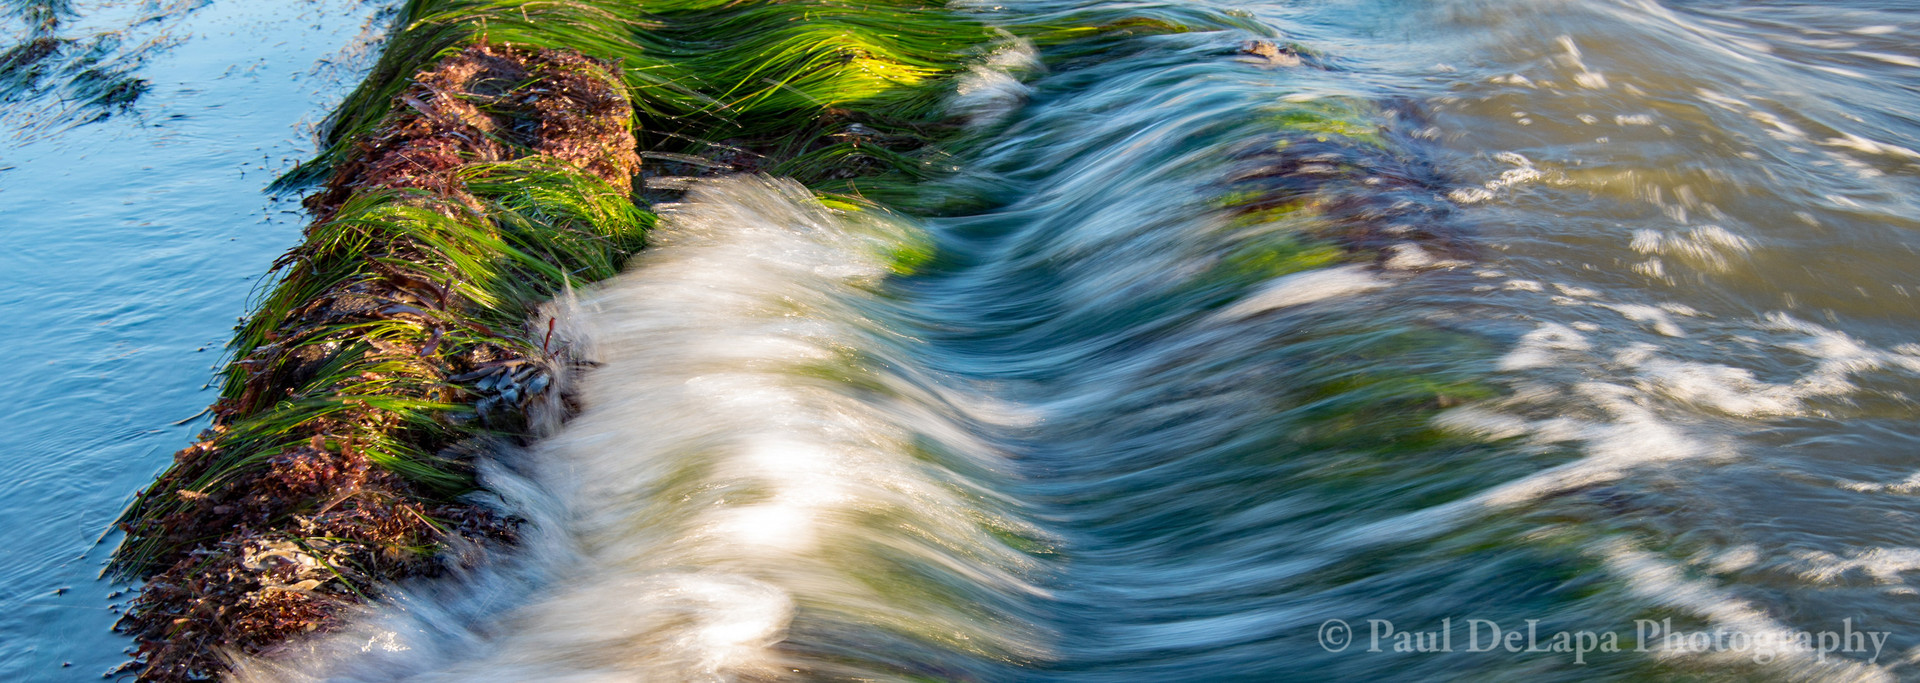 Water Movement #20